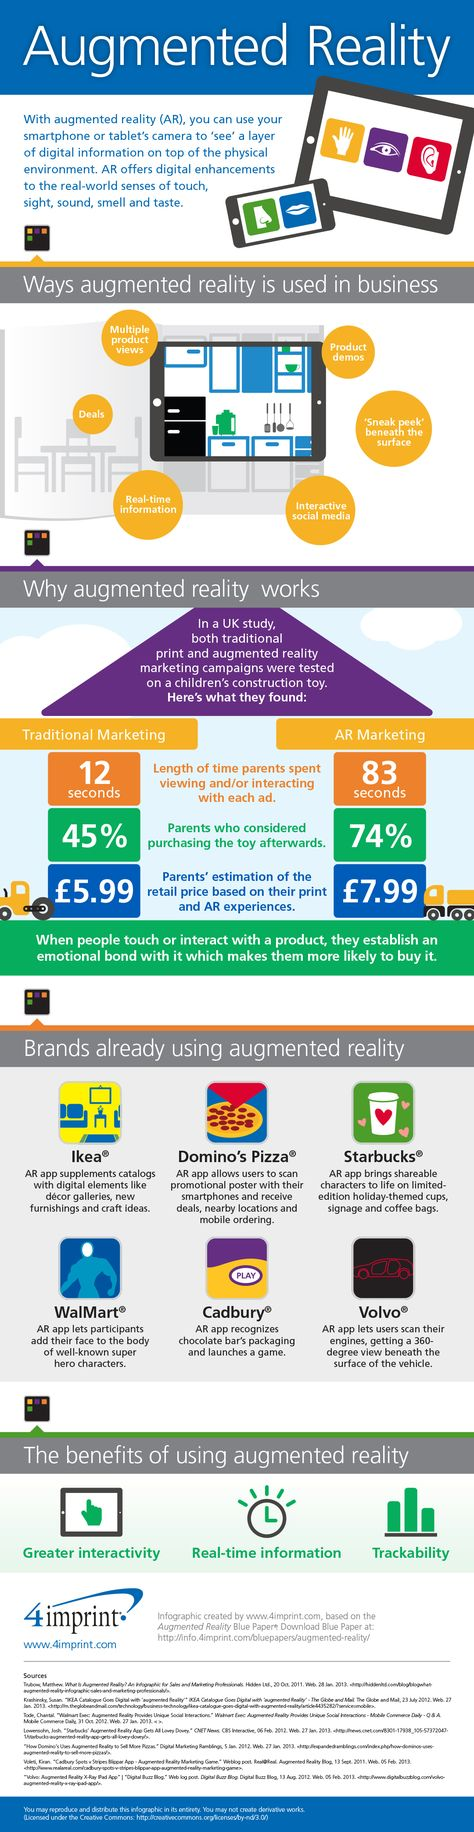 69 best Augmented Reality for Business images on Pinterest ...